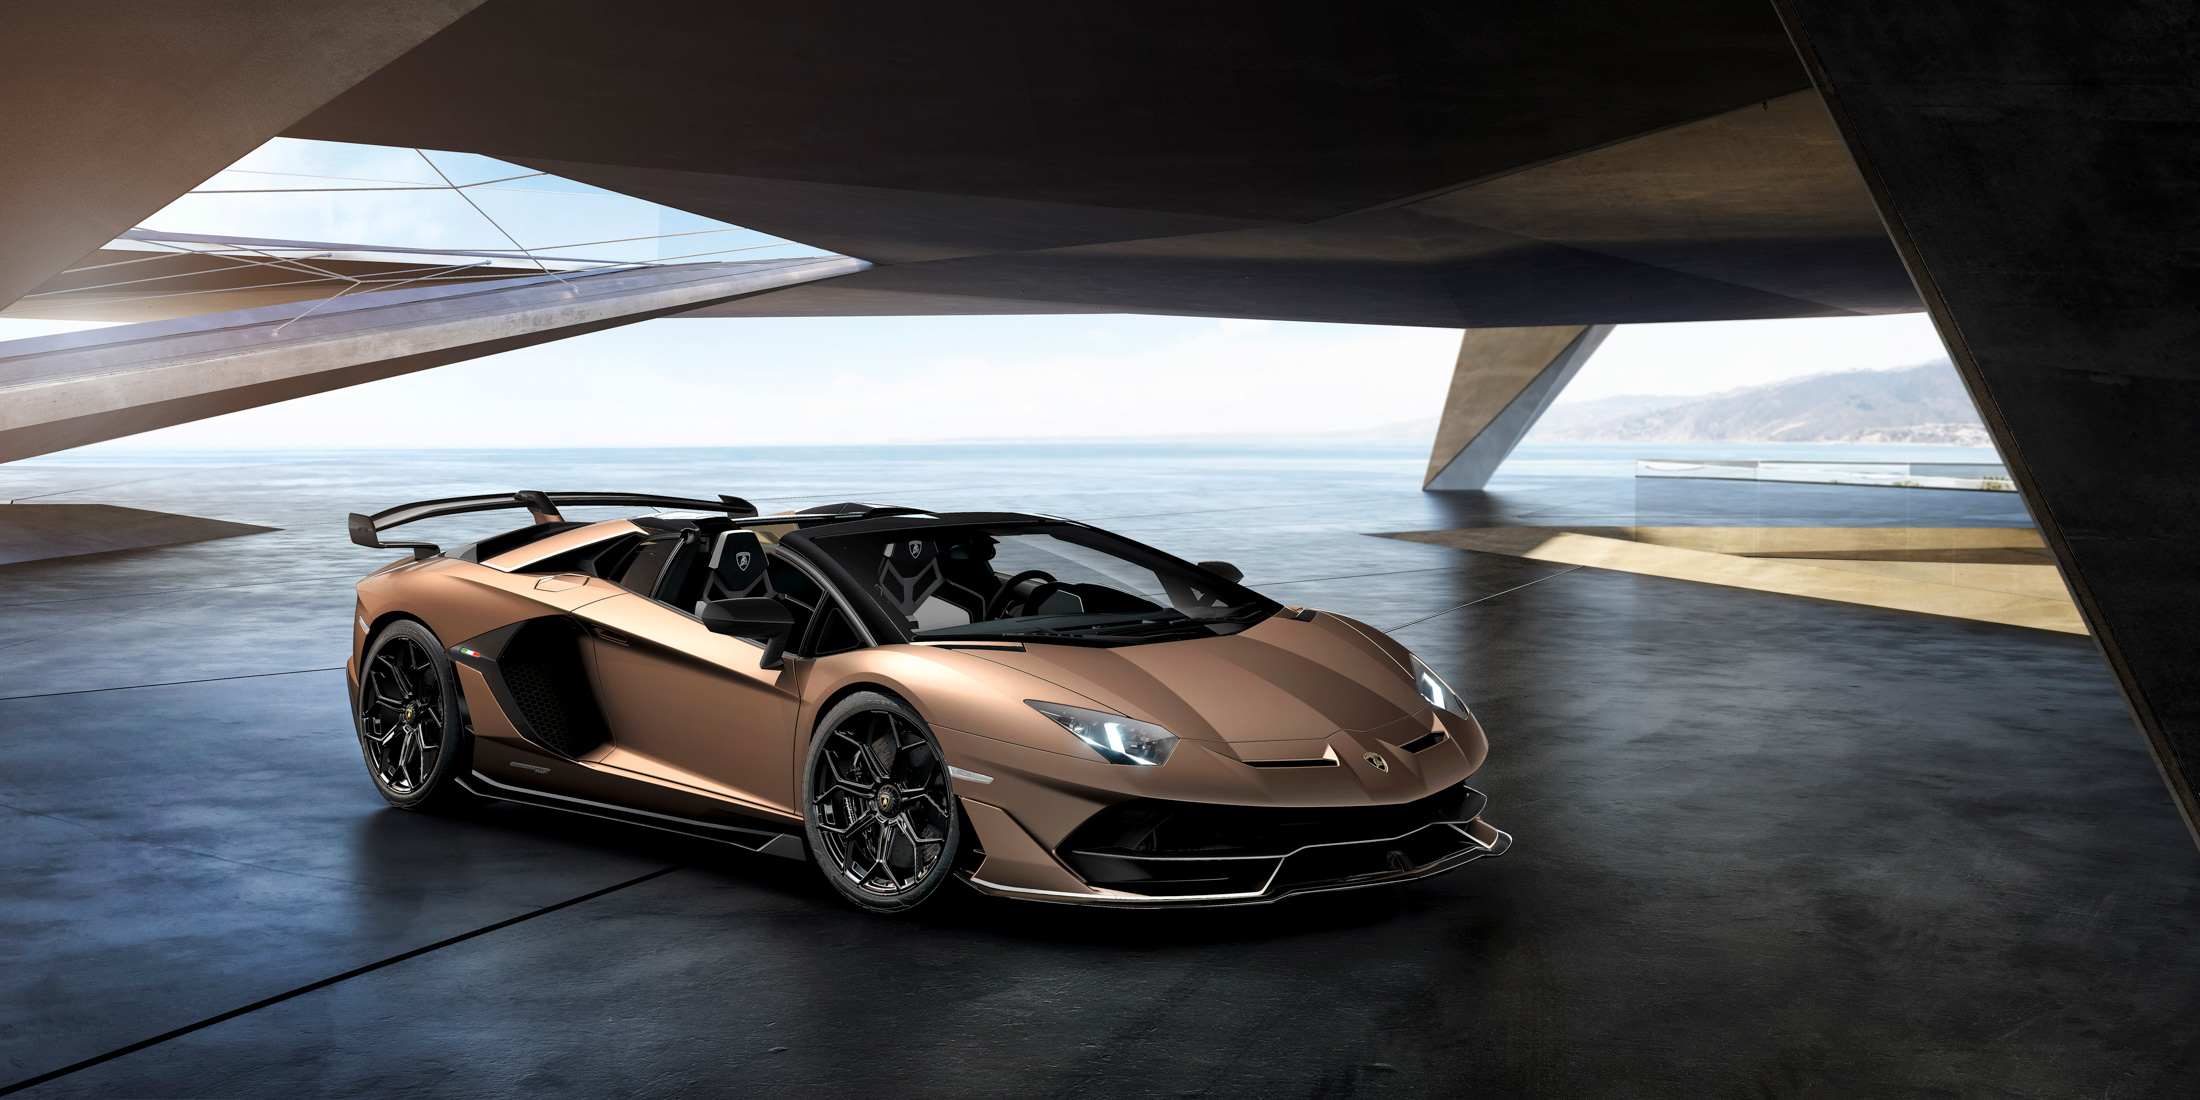 relates to The Unadulterated Excess of a $574,000 Lamborghini